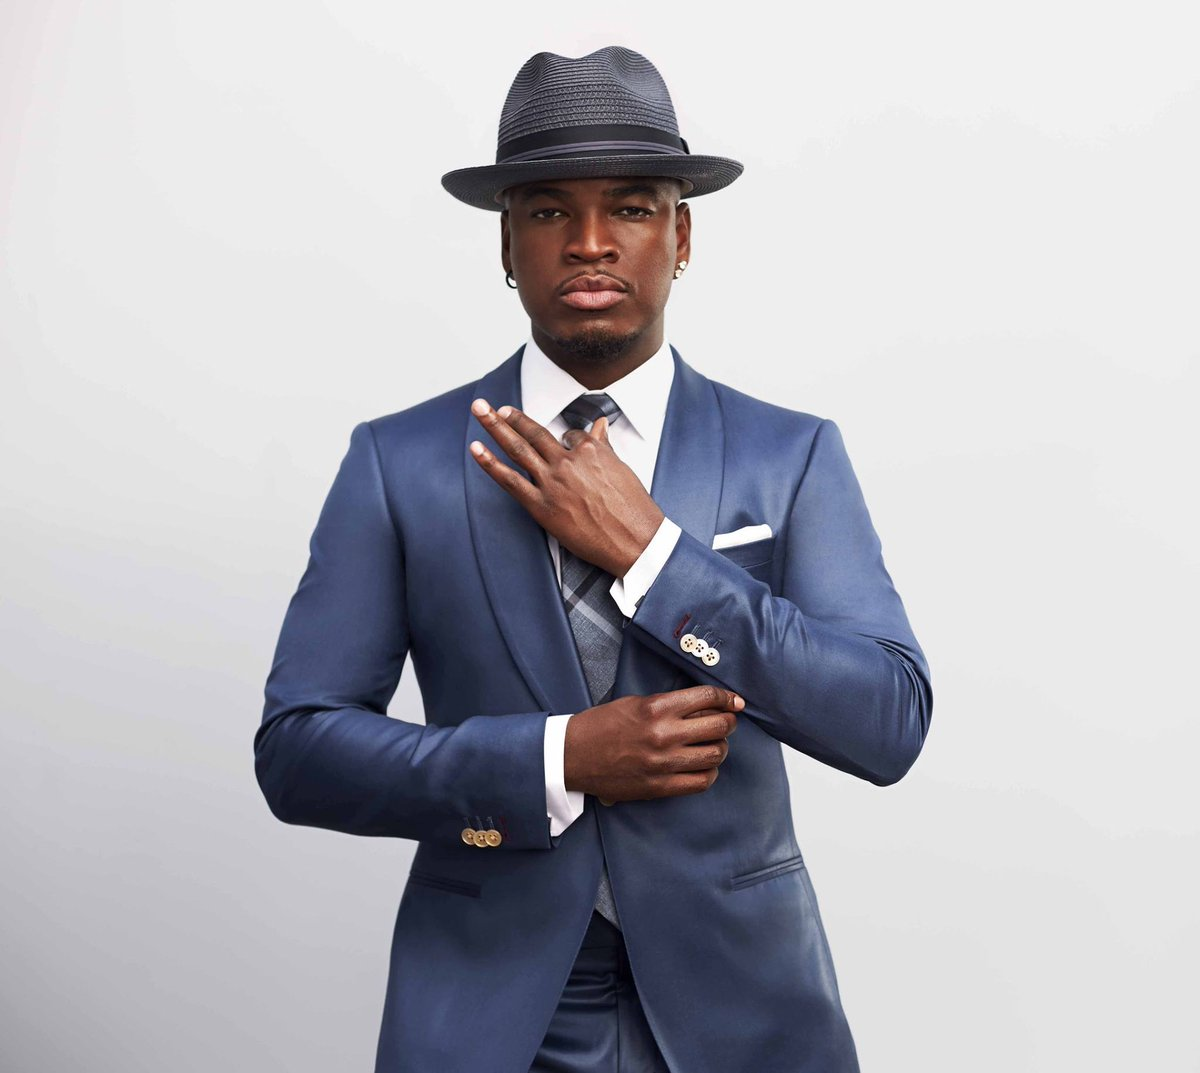 Looking forward to seeing R&B star and multiple GRAMMY award winner @NeYoCompound perform at #ZoukOut2016 #HK.  @ZoukOutOfficial #UpperHouse https://t.co/VcgkH3tLL6